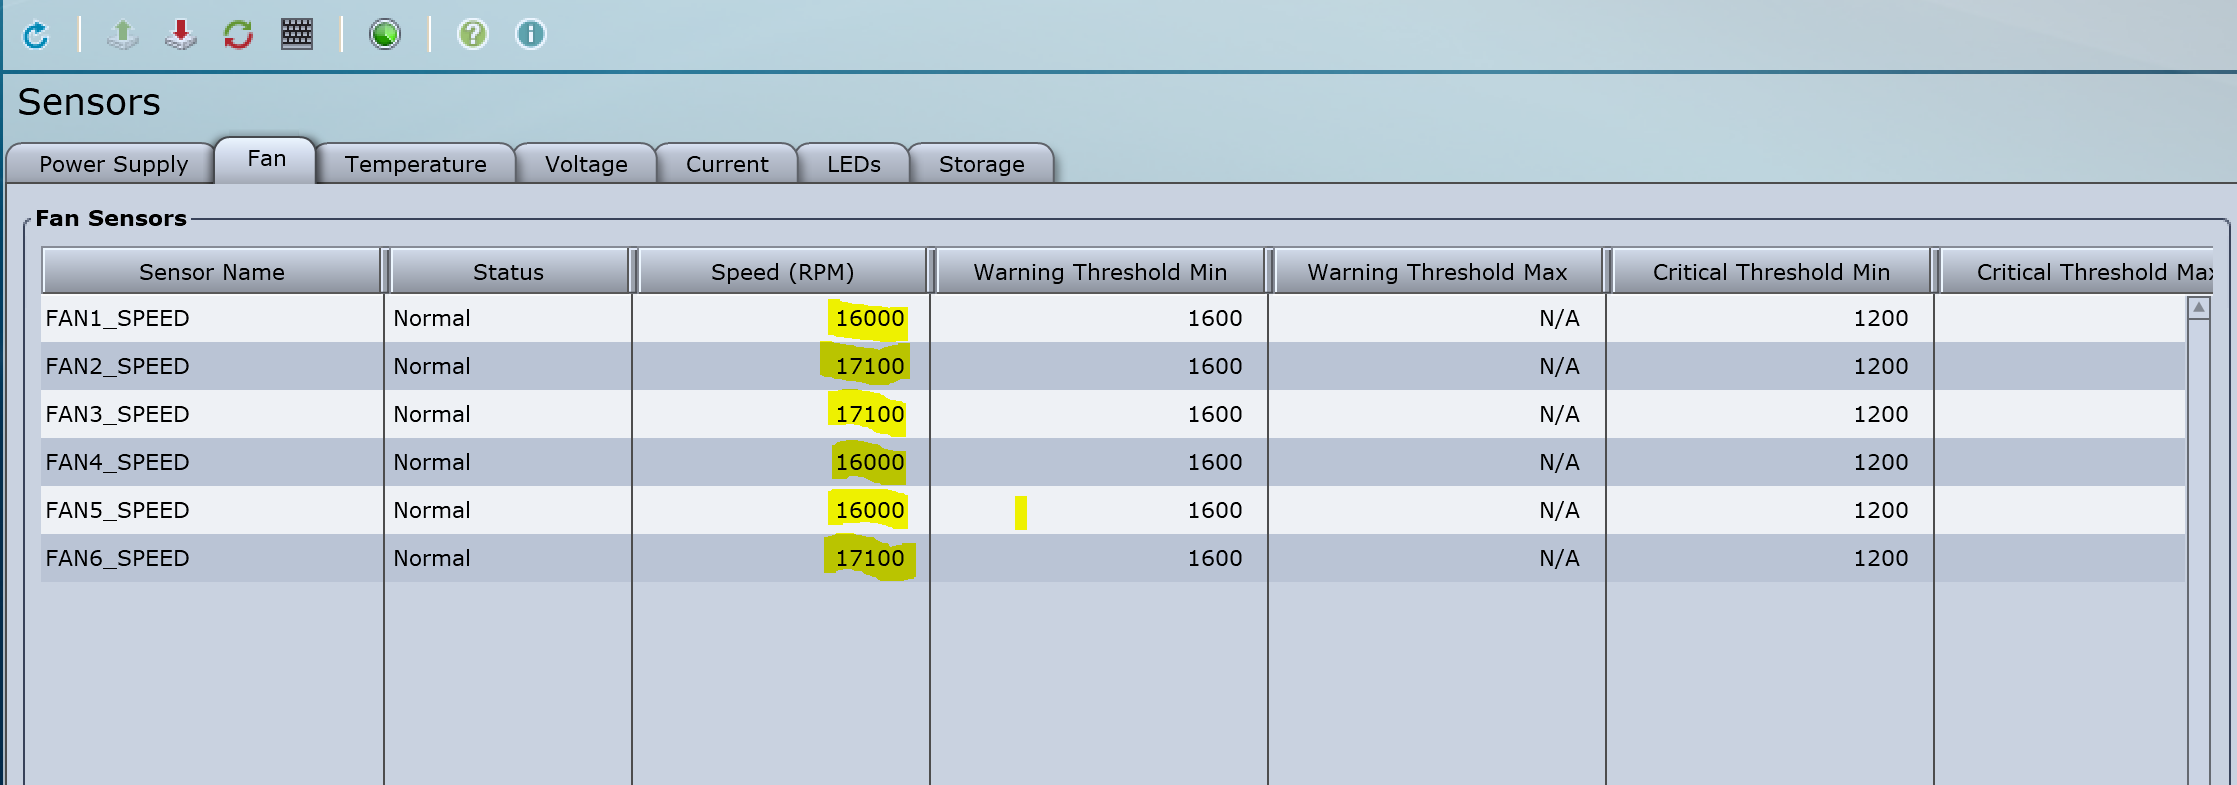 Solved: Cisco UCS-C240-M3S Fans are LOUD and on... - Cisco Community